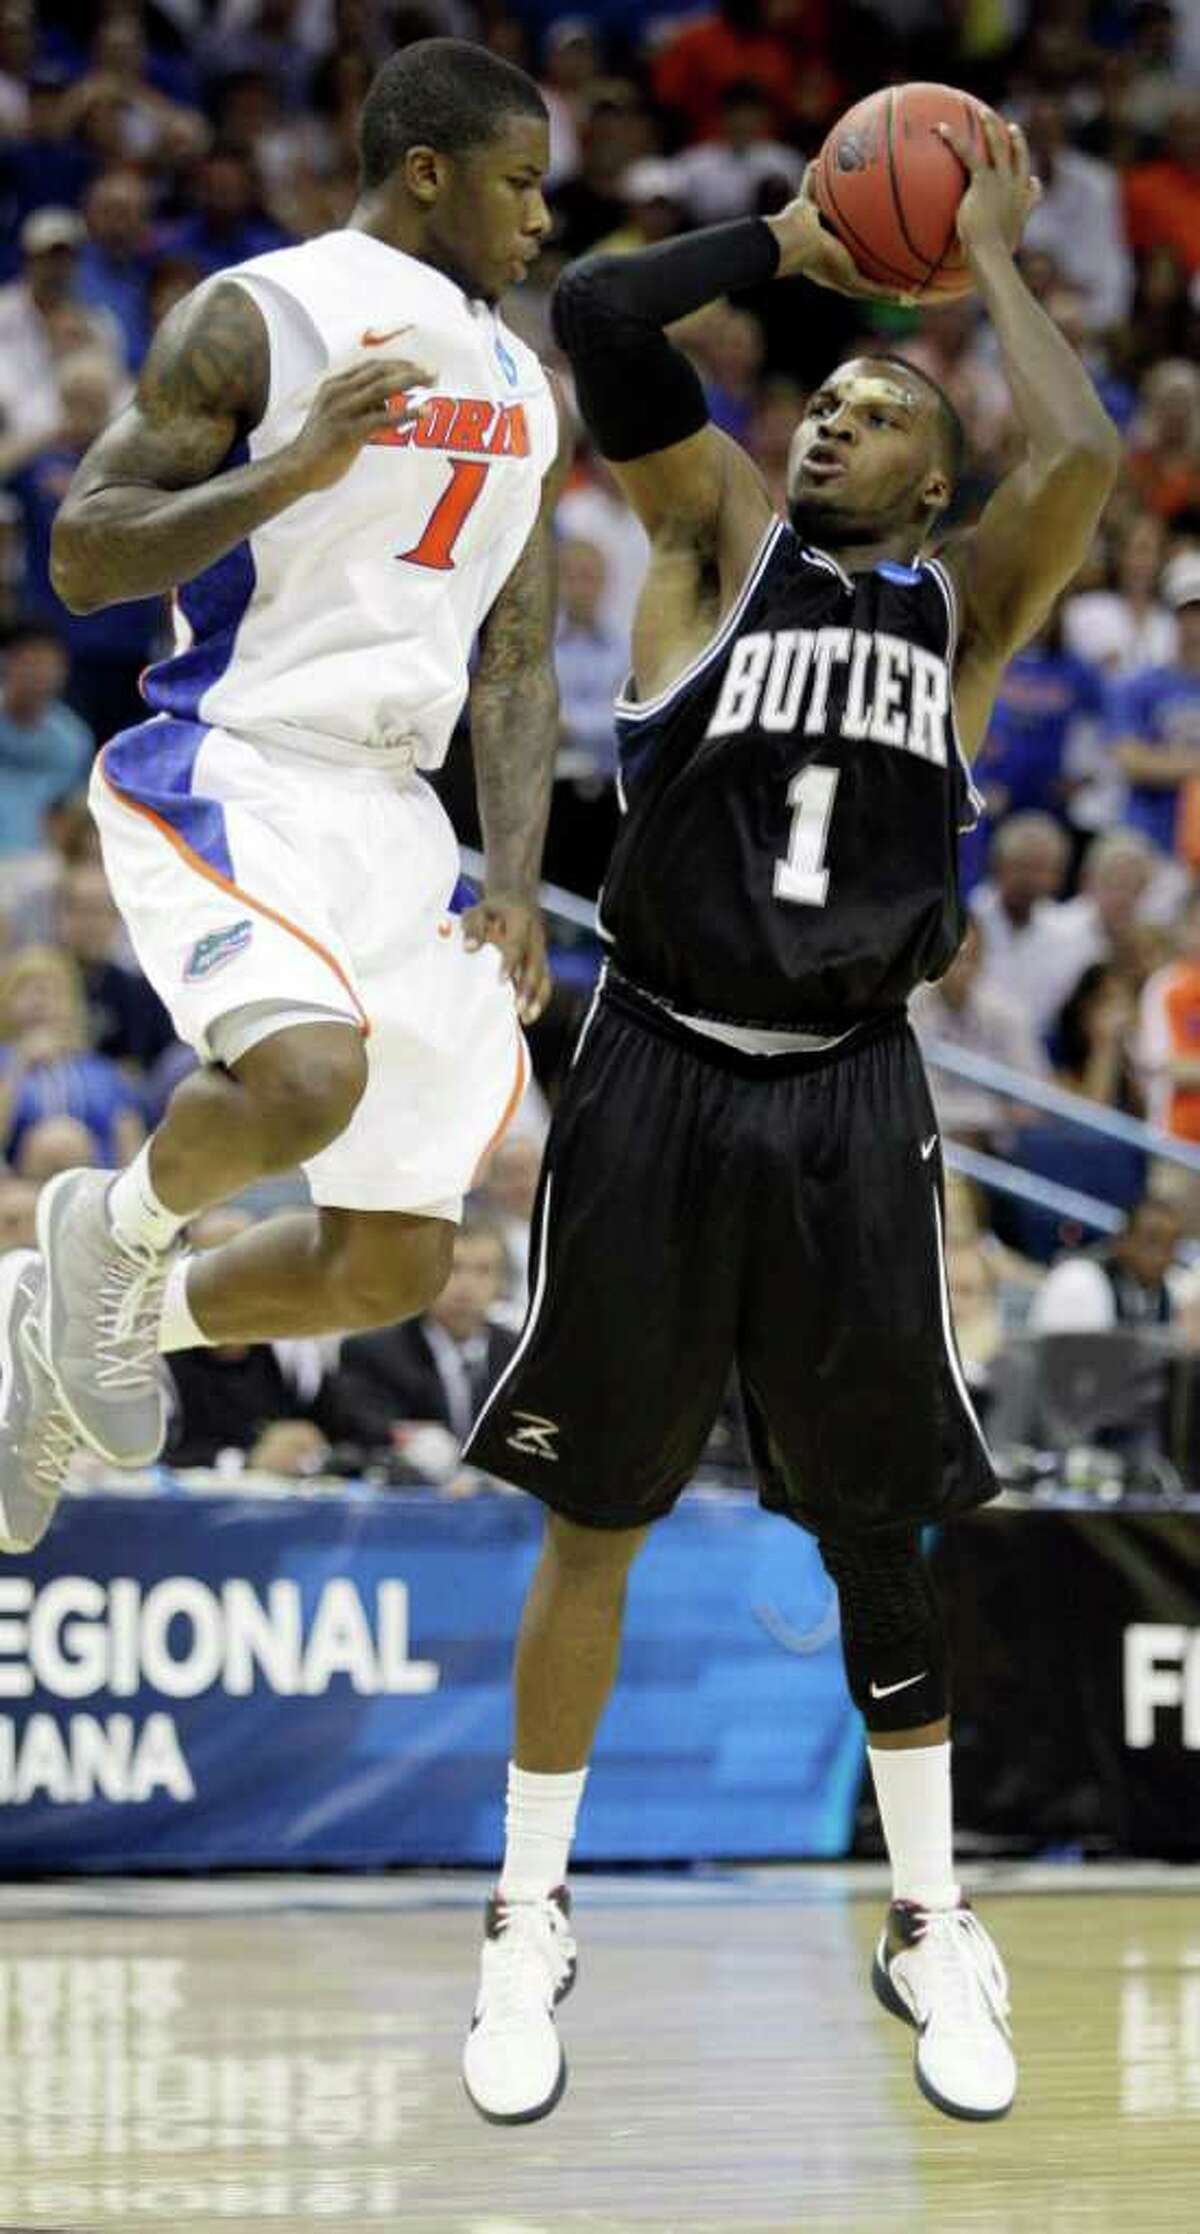 Butler's Shelvin Mack shoots with Florida's Kenny Boynton defending during overtime of the NCAA Southeast regional college basketball championship game Saturday, March 26, 2011, in New Orleans. (AP Photo/Patrick Semansky)